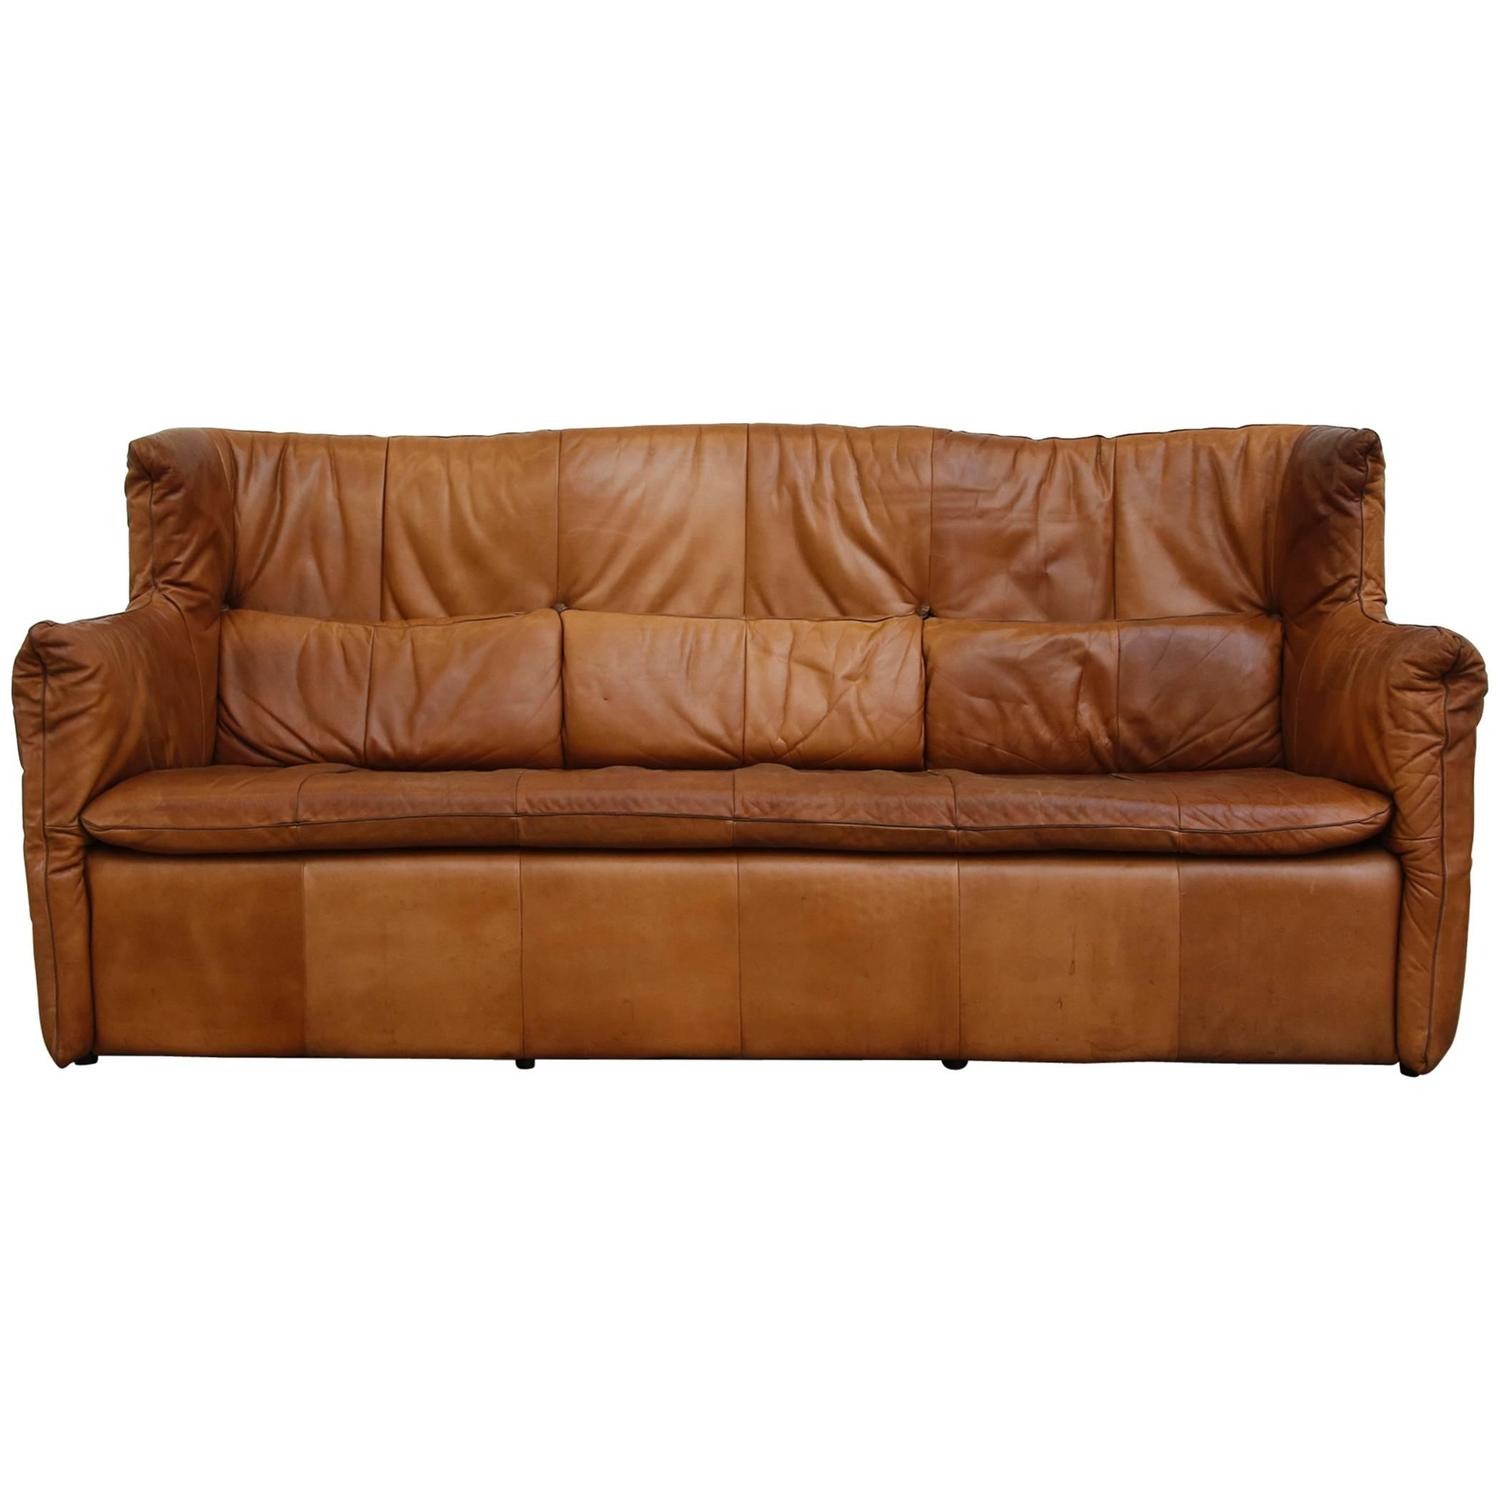 seats and sofas den haag contact liverpool newcastle sofascore gerard van berrg natural leather sofa for sale at 1stdibs